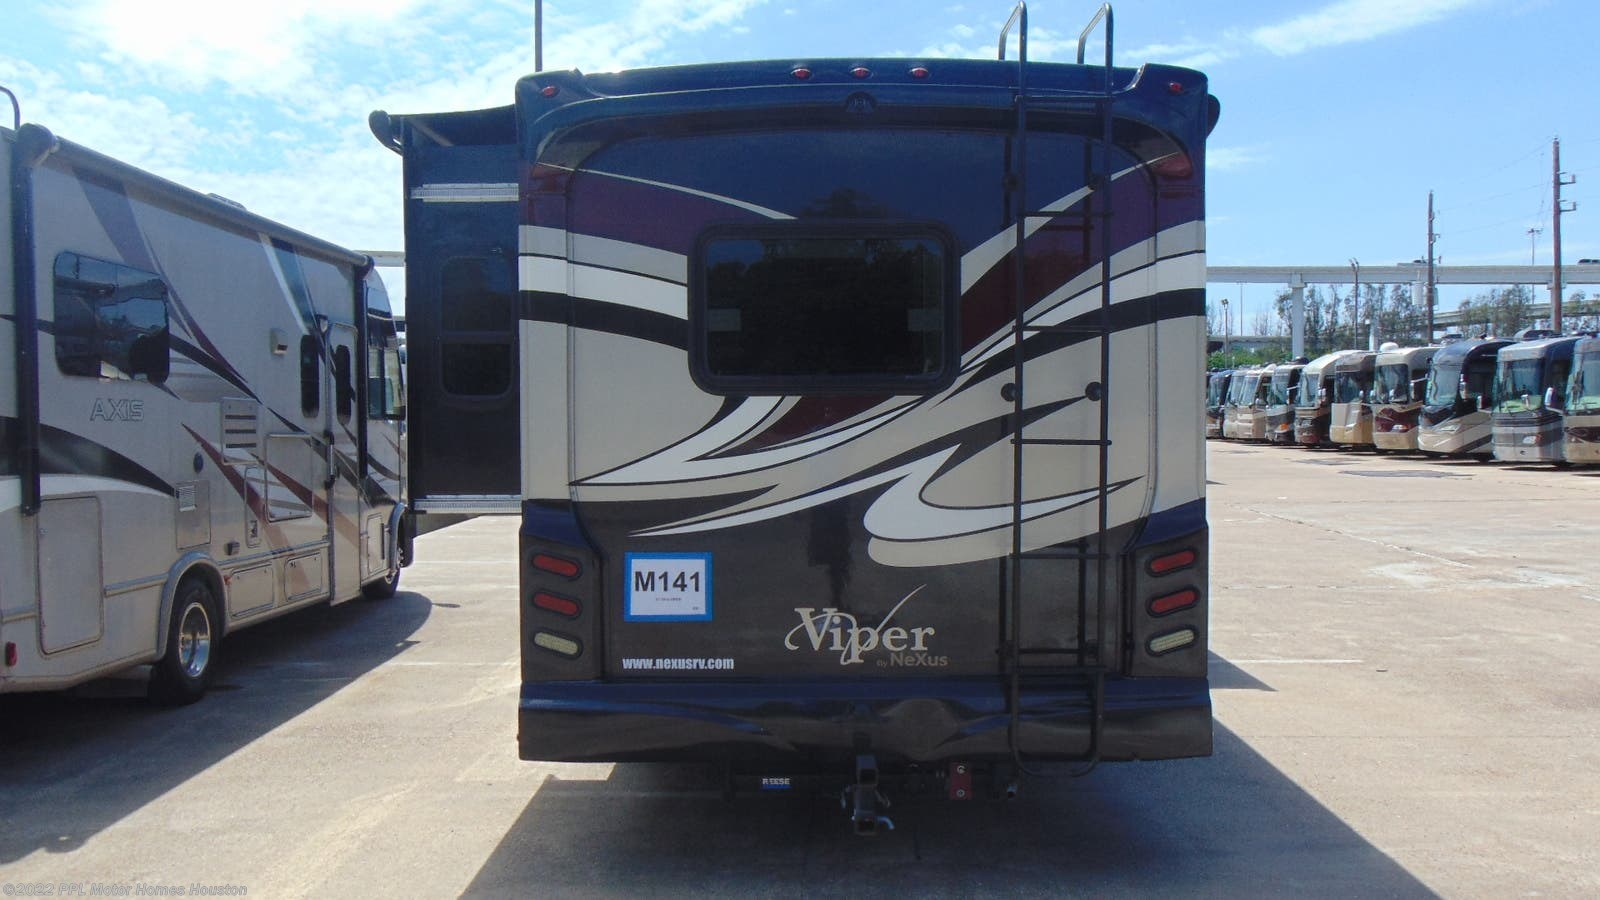 Lp Gas Cooktops For Rv On Sale Now Ppl Motor Homes >> 2014 Nexus Rv Viper 29v For Sale In Houston Tx 77074 M141